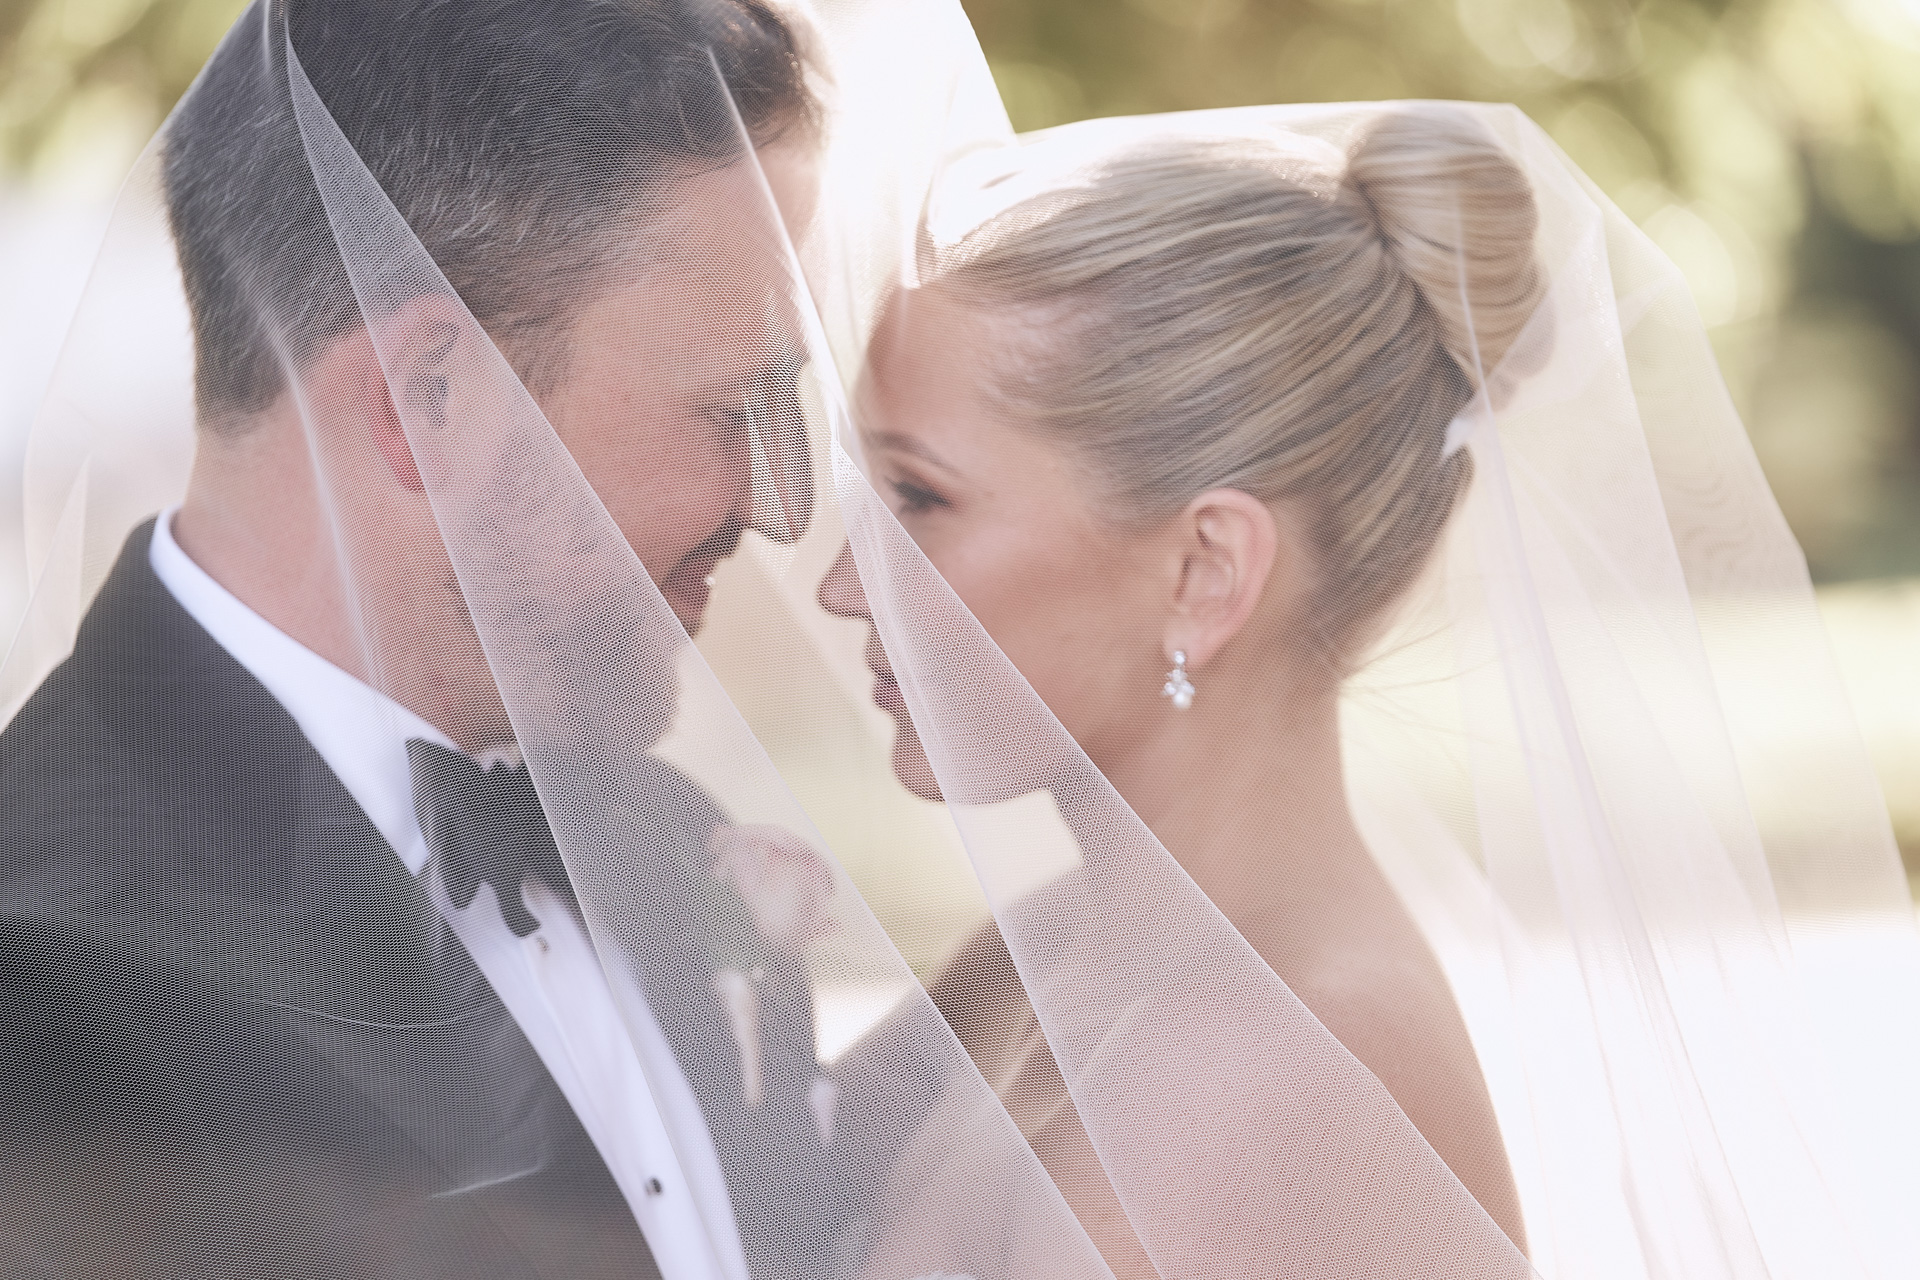 Lost in Love - a Photo from T and J's wedding in the Yarra Valley hosted by JCAU Events